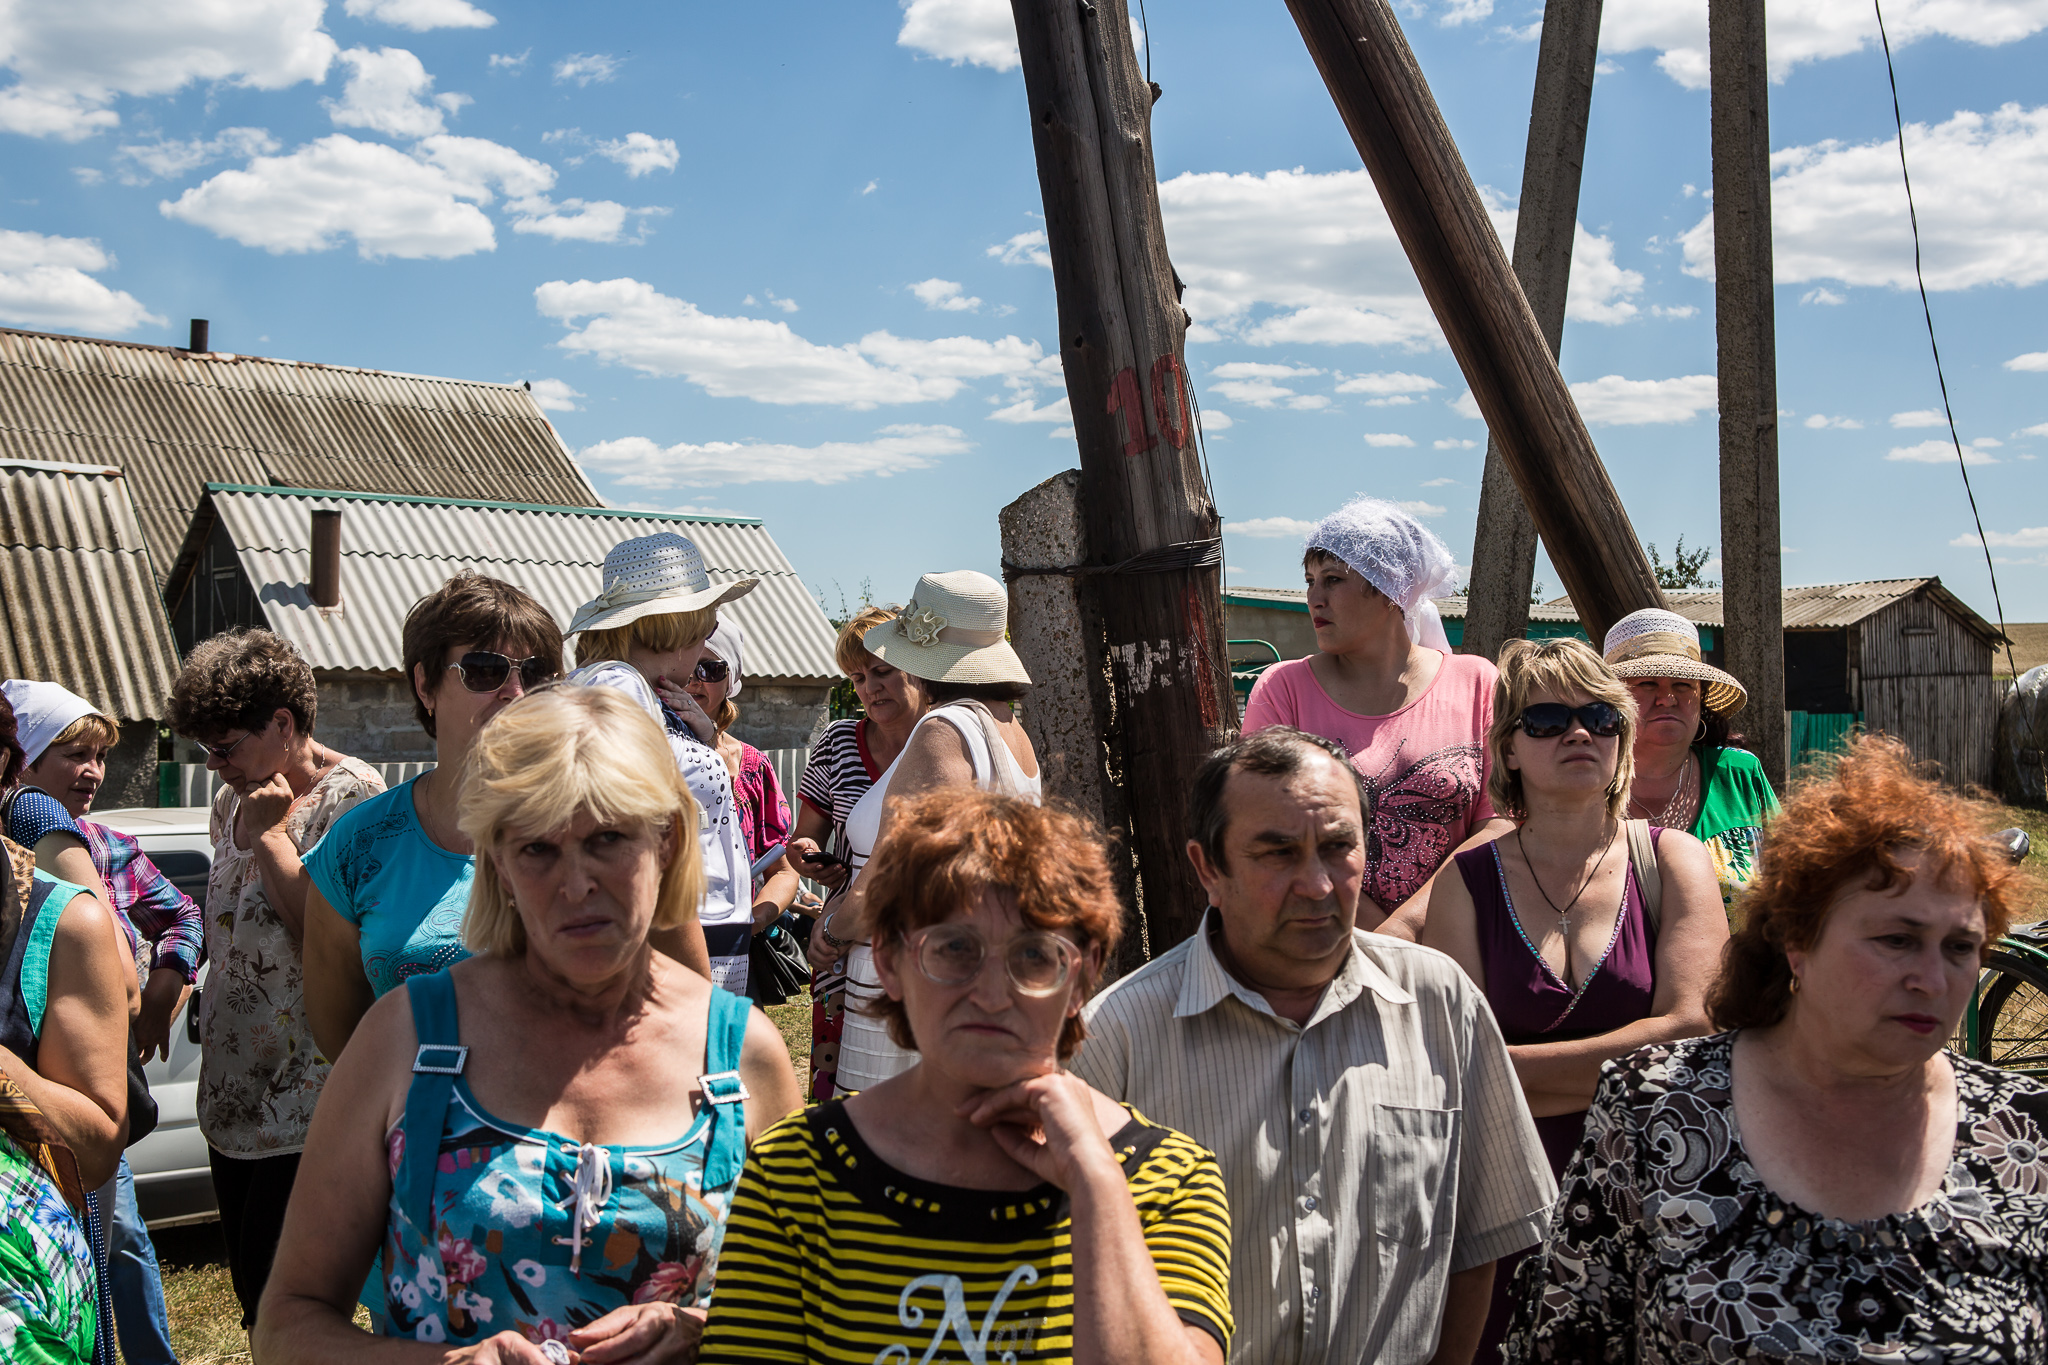 Local residents gather to watch as the bodies of victims of Malaysia Airlines flight MH17 are removed from the scene of the crash on July 21, 2014 in Grabovo, Ukraine. The flight was traveling from Amsterdam to Kuala Lumpur when it crashed killing all 298 on board including 80 children. The aircraft was allegedly shot down by a missile and investigations continue over the perpetrators of the attack.